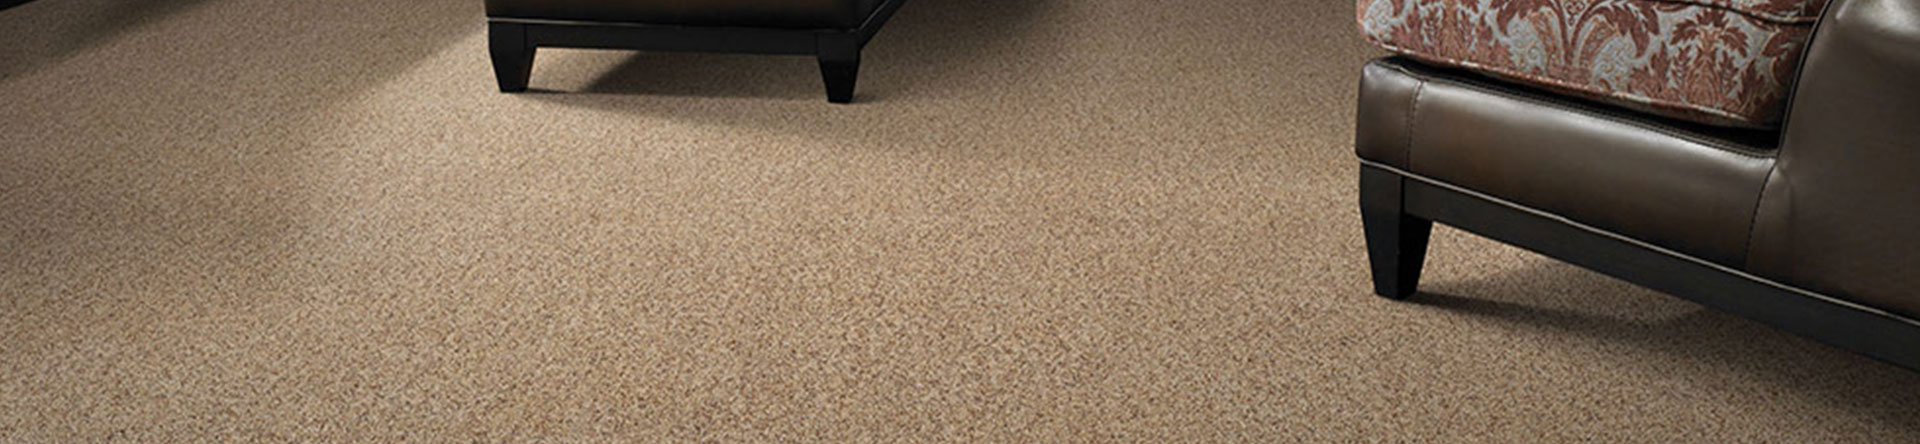 Tigressa Carpet Colors Review